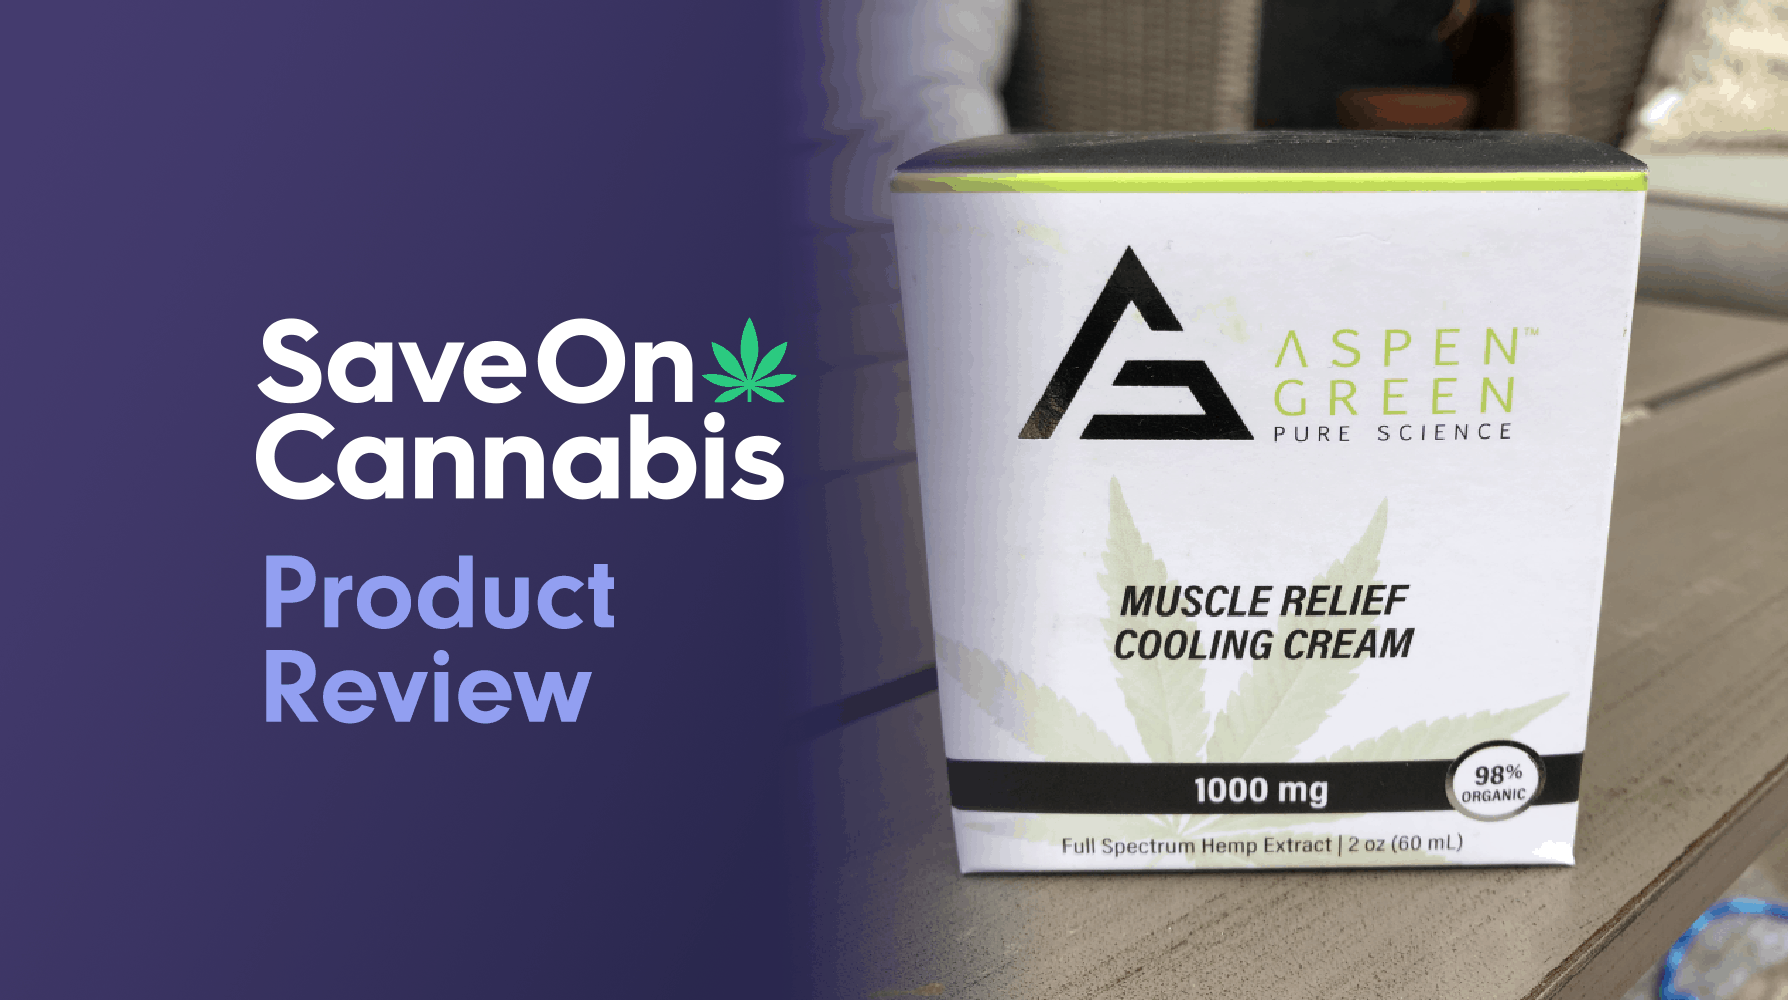 aspen green muscle relief cooling cream review save on cannabis website